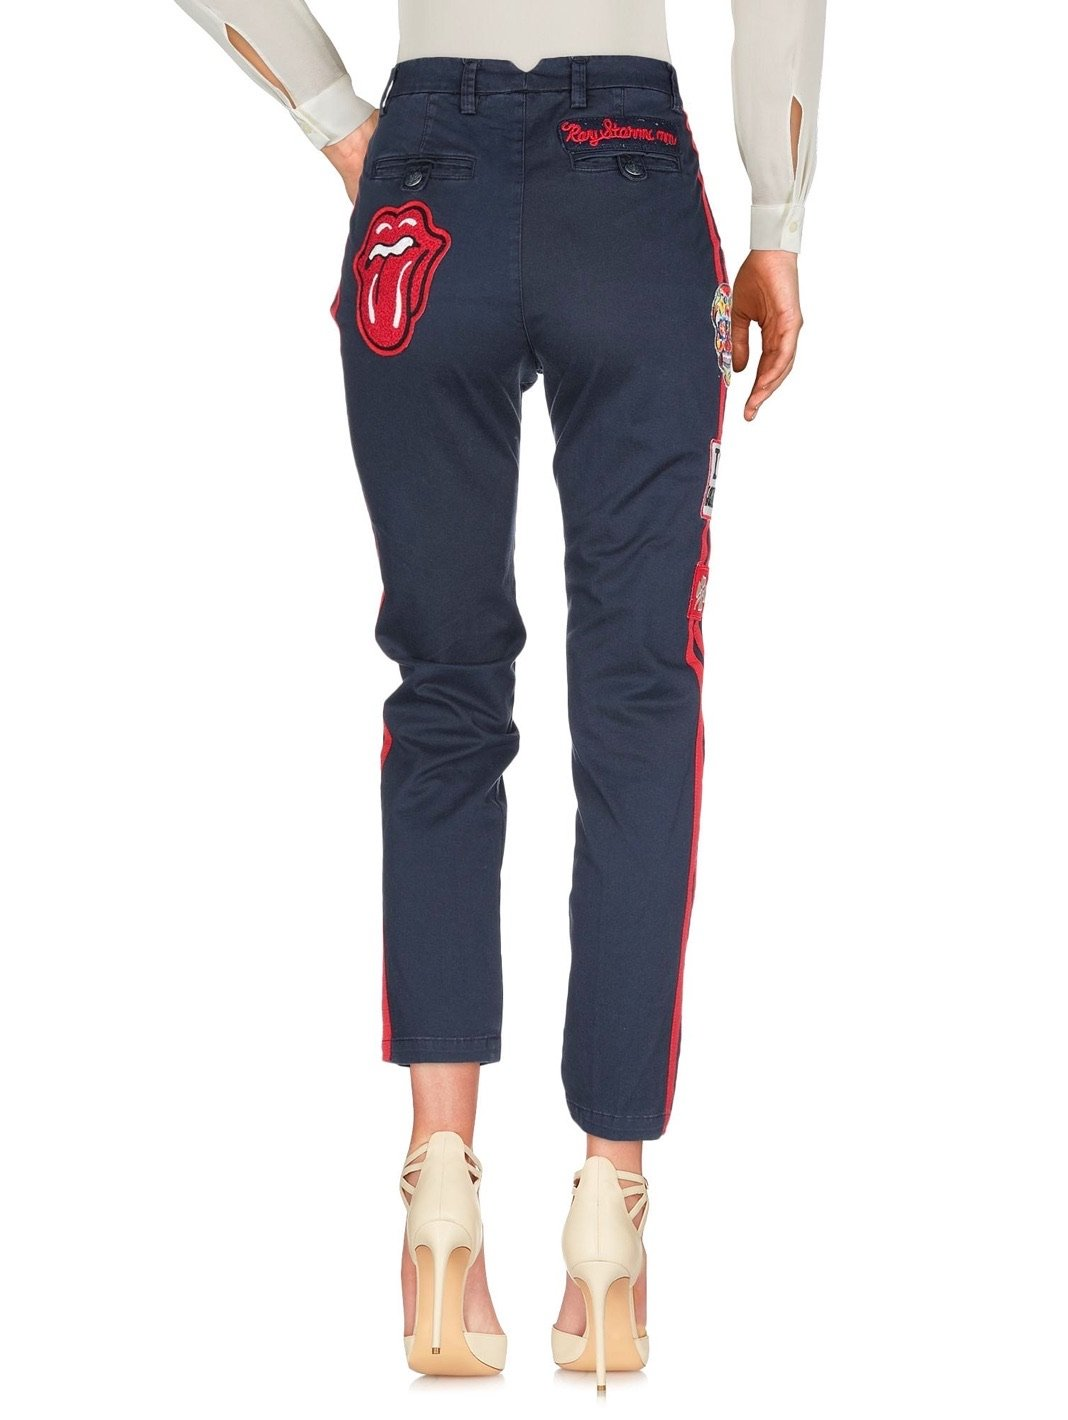 Side Stripes Trousers - The Bobby Boga